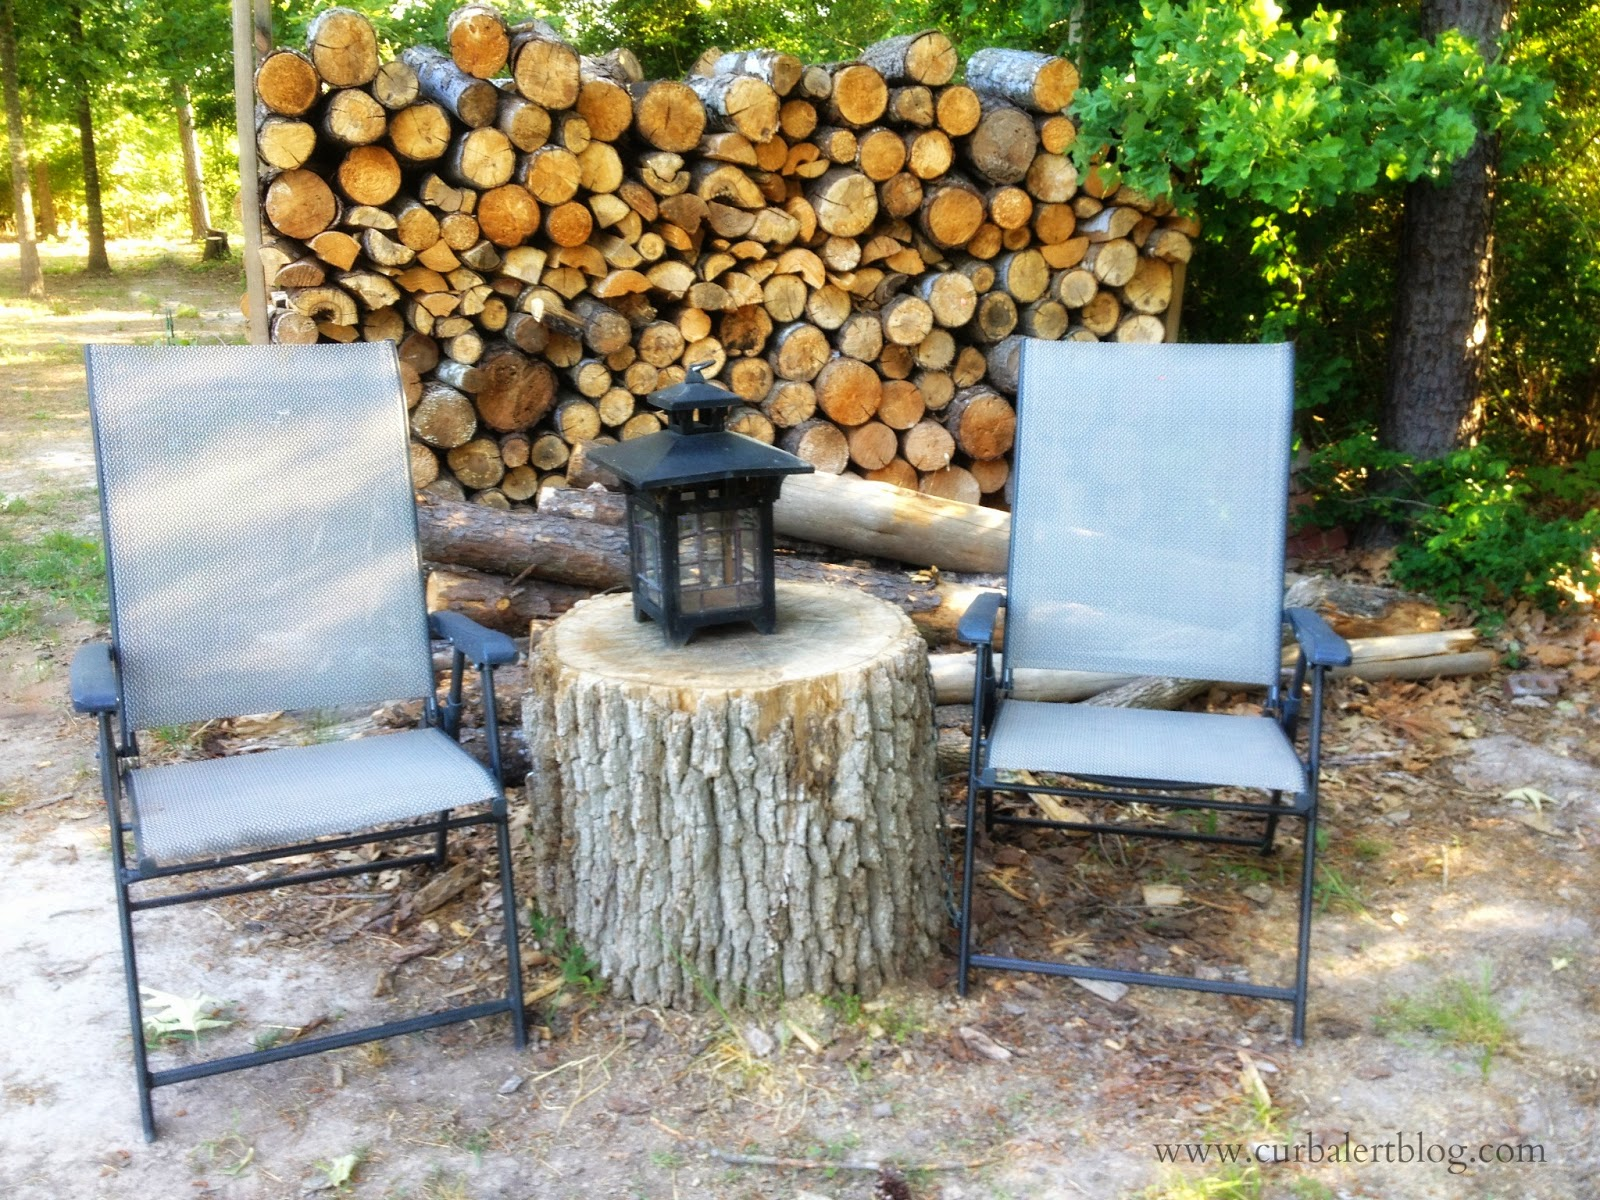 Welcome to Our Woods! sitting area with Patriotic Pallet American Flag via Curb Alert! www.curbalertblog.com